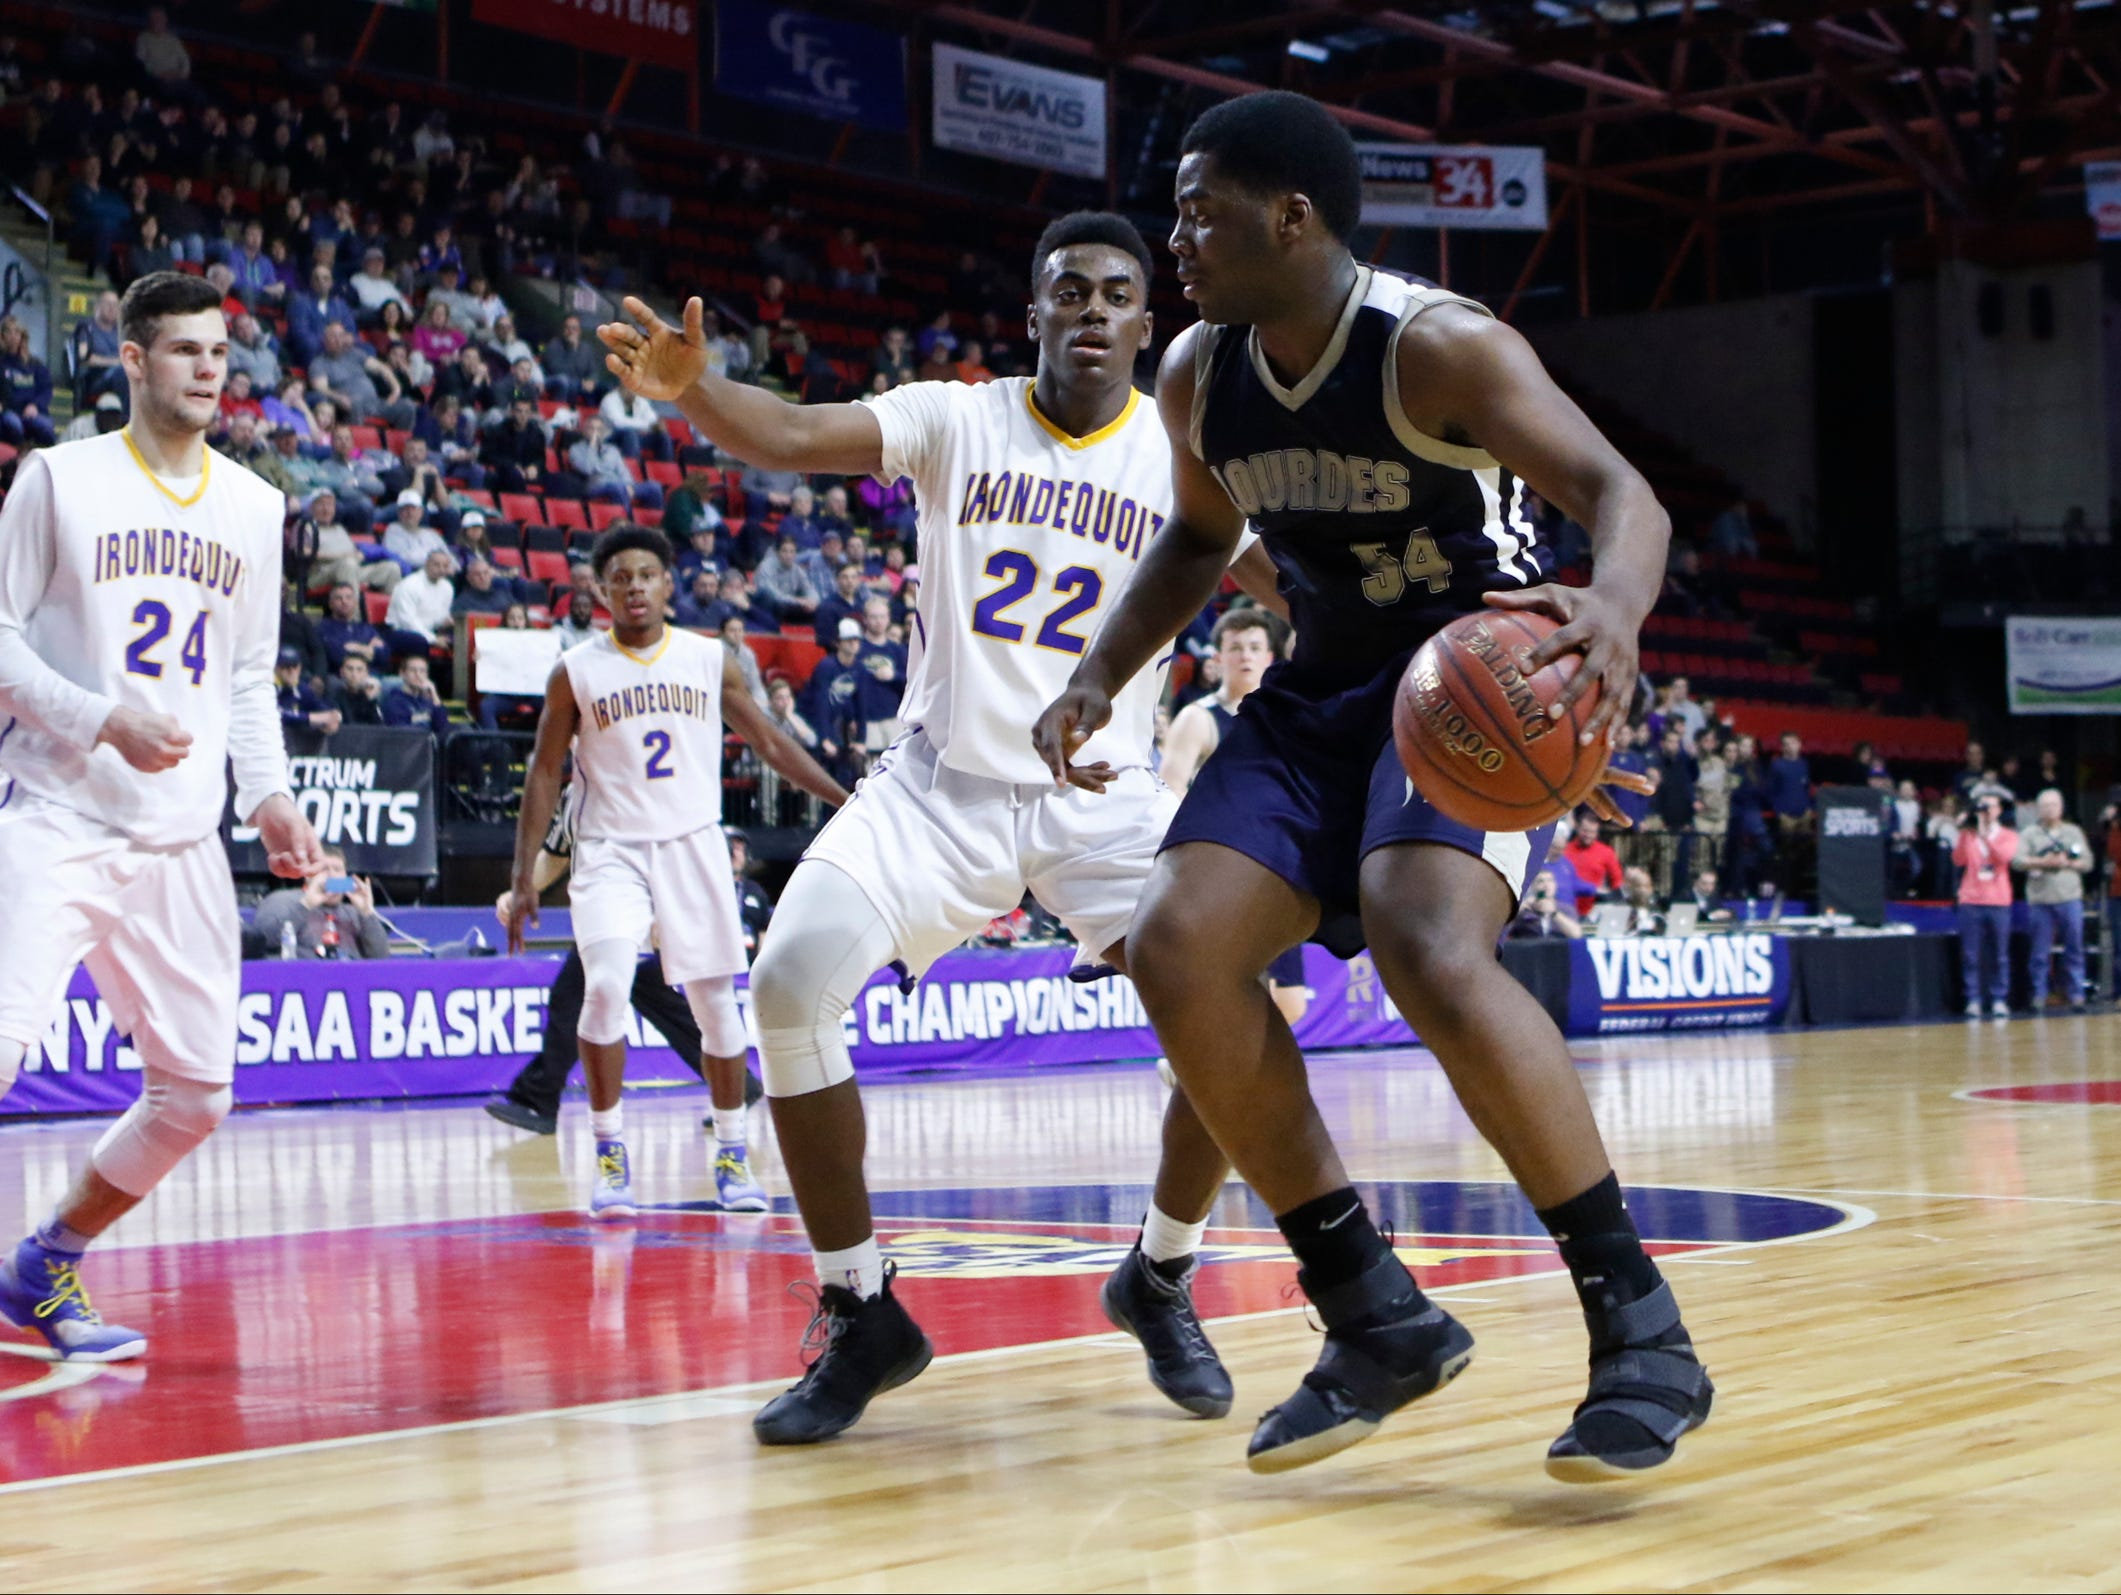 Lourdes' James Anozie looks to attack the basket during the Class A state final against Irondequoit.